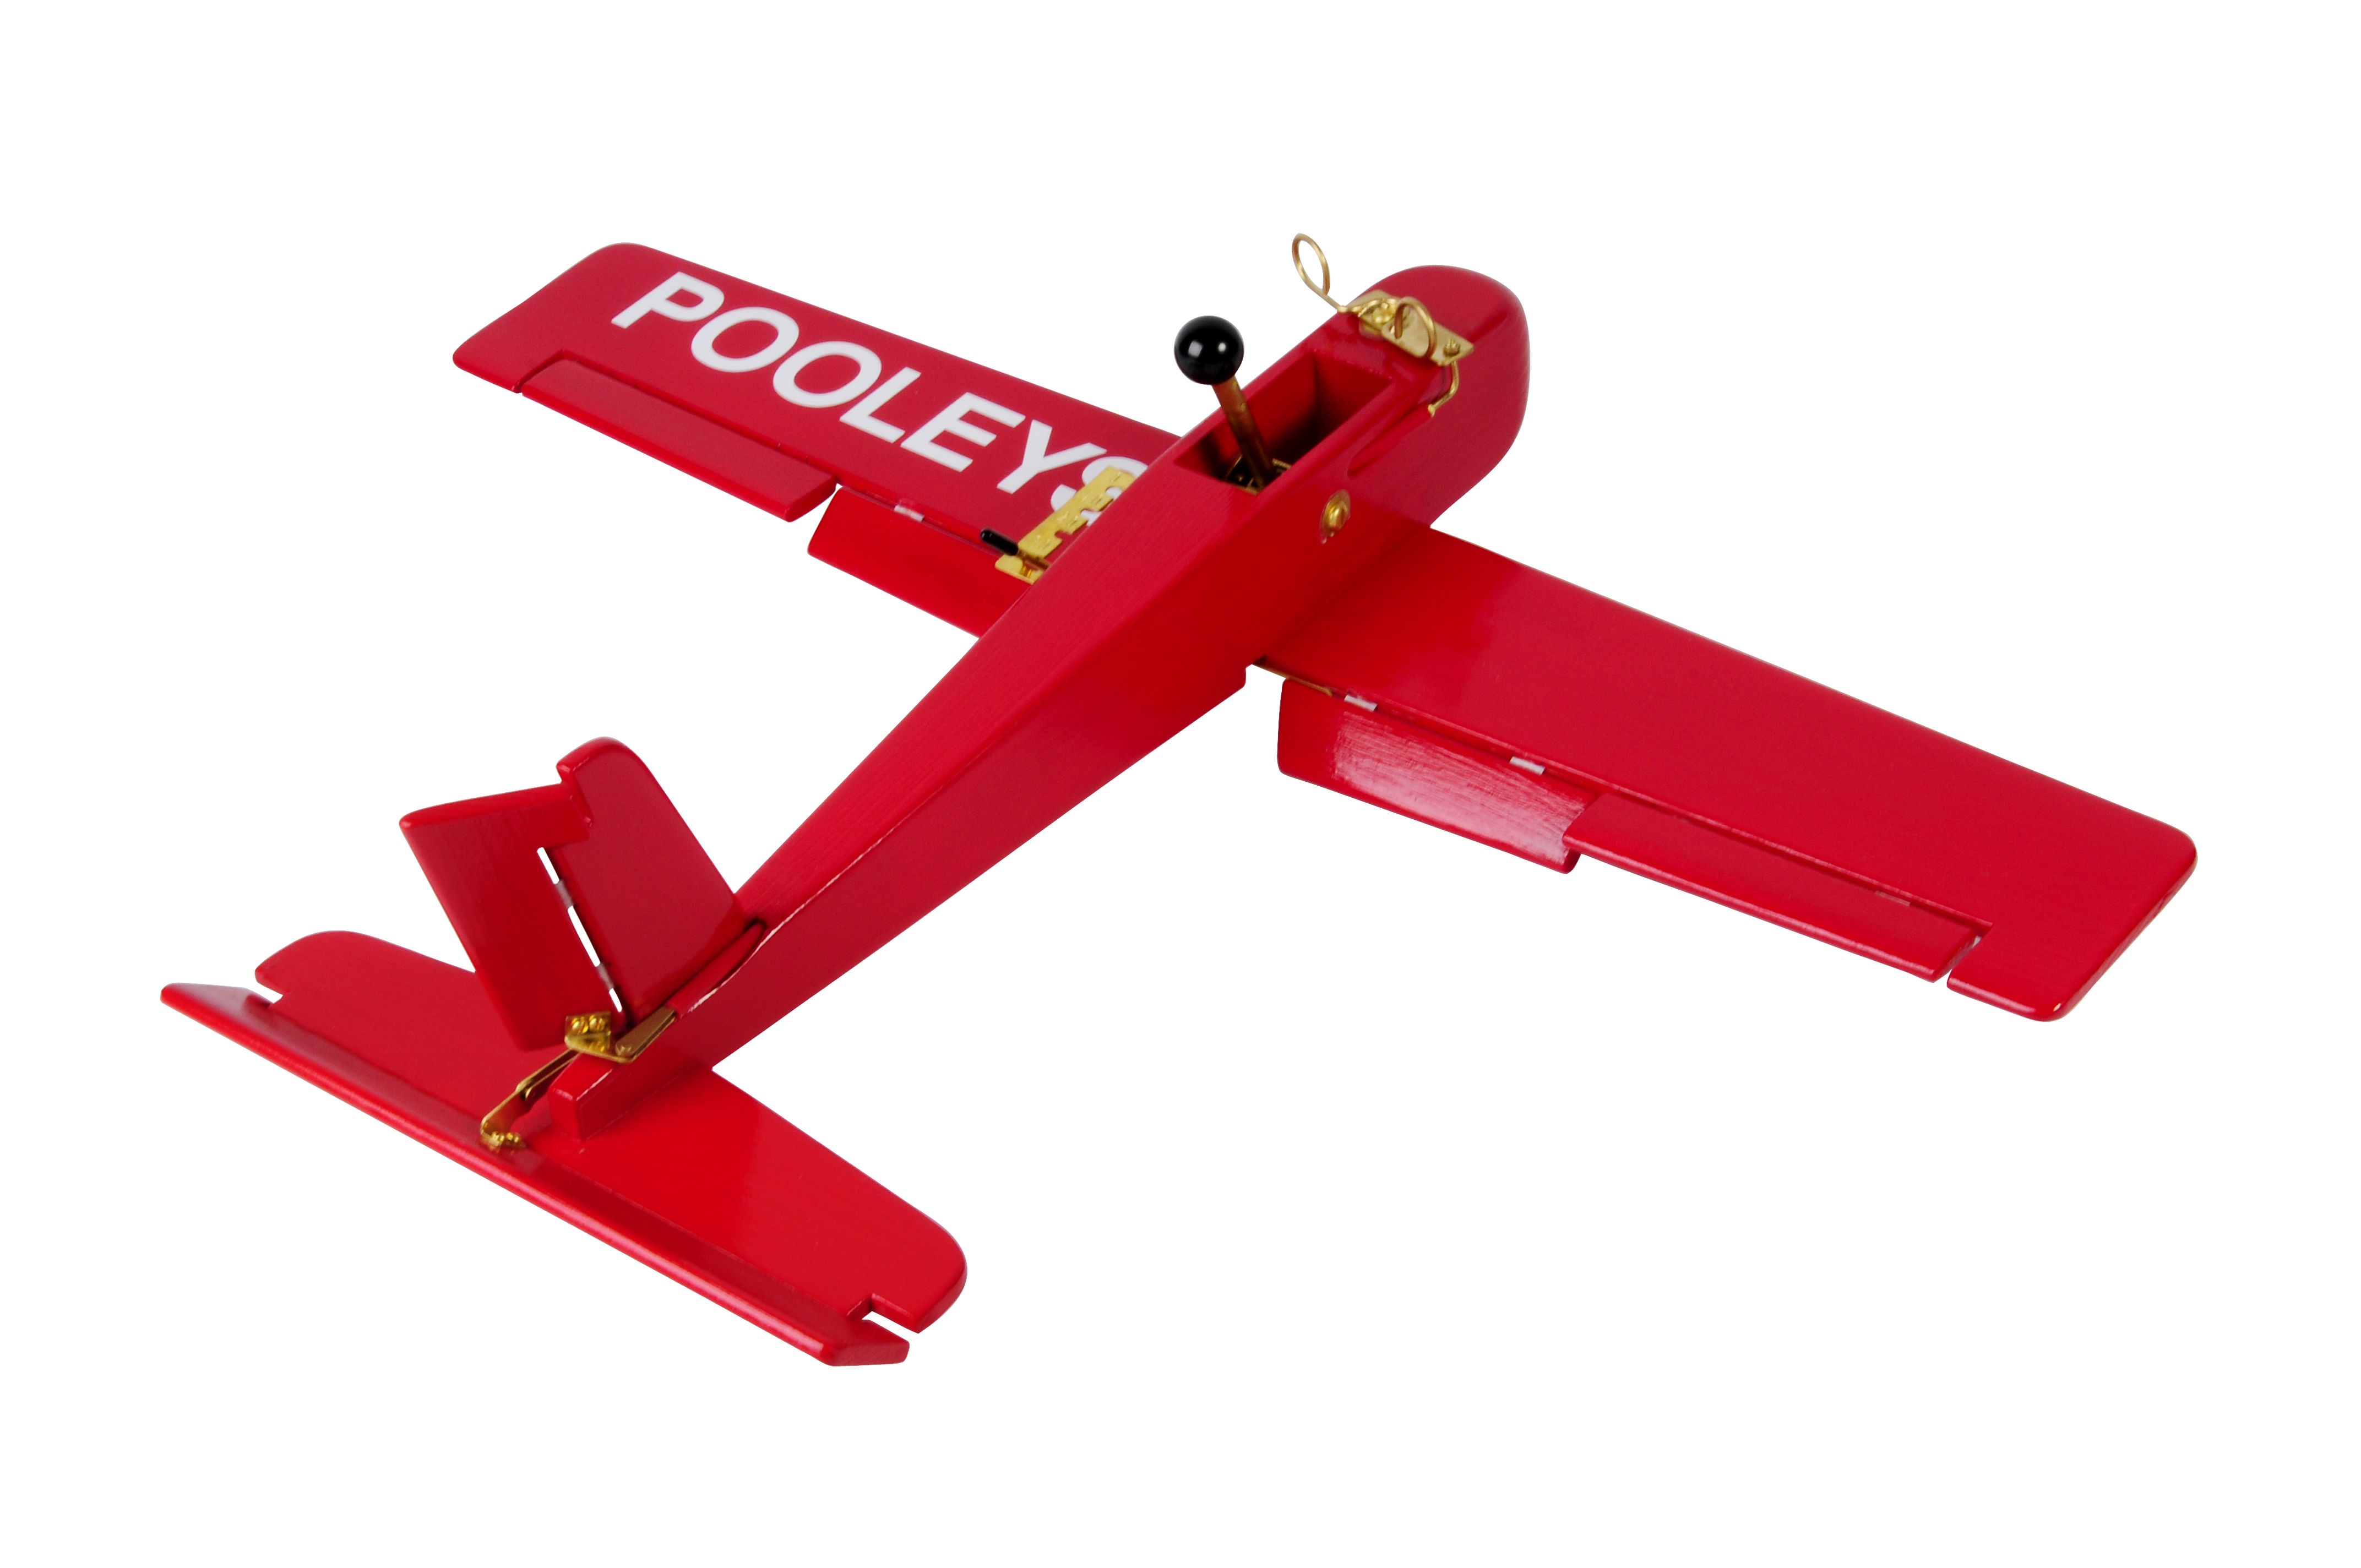 Demonstration Aircraft Model Fixed WingImage Id:121798